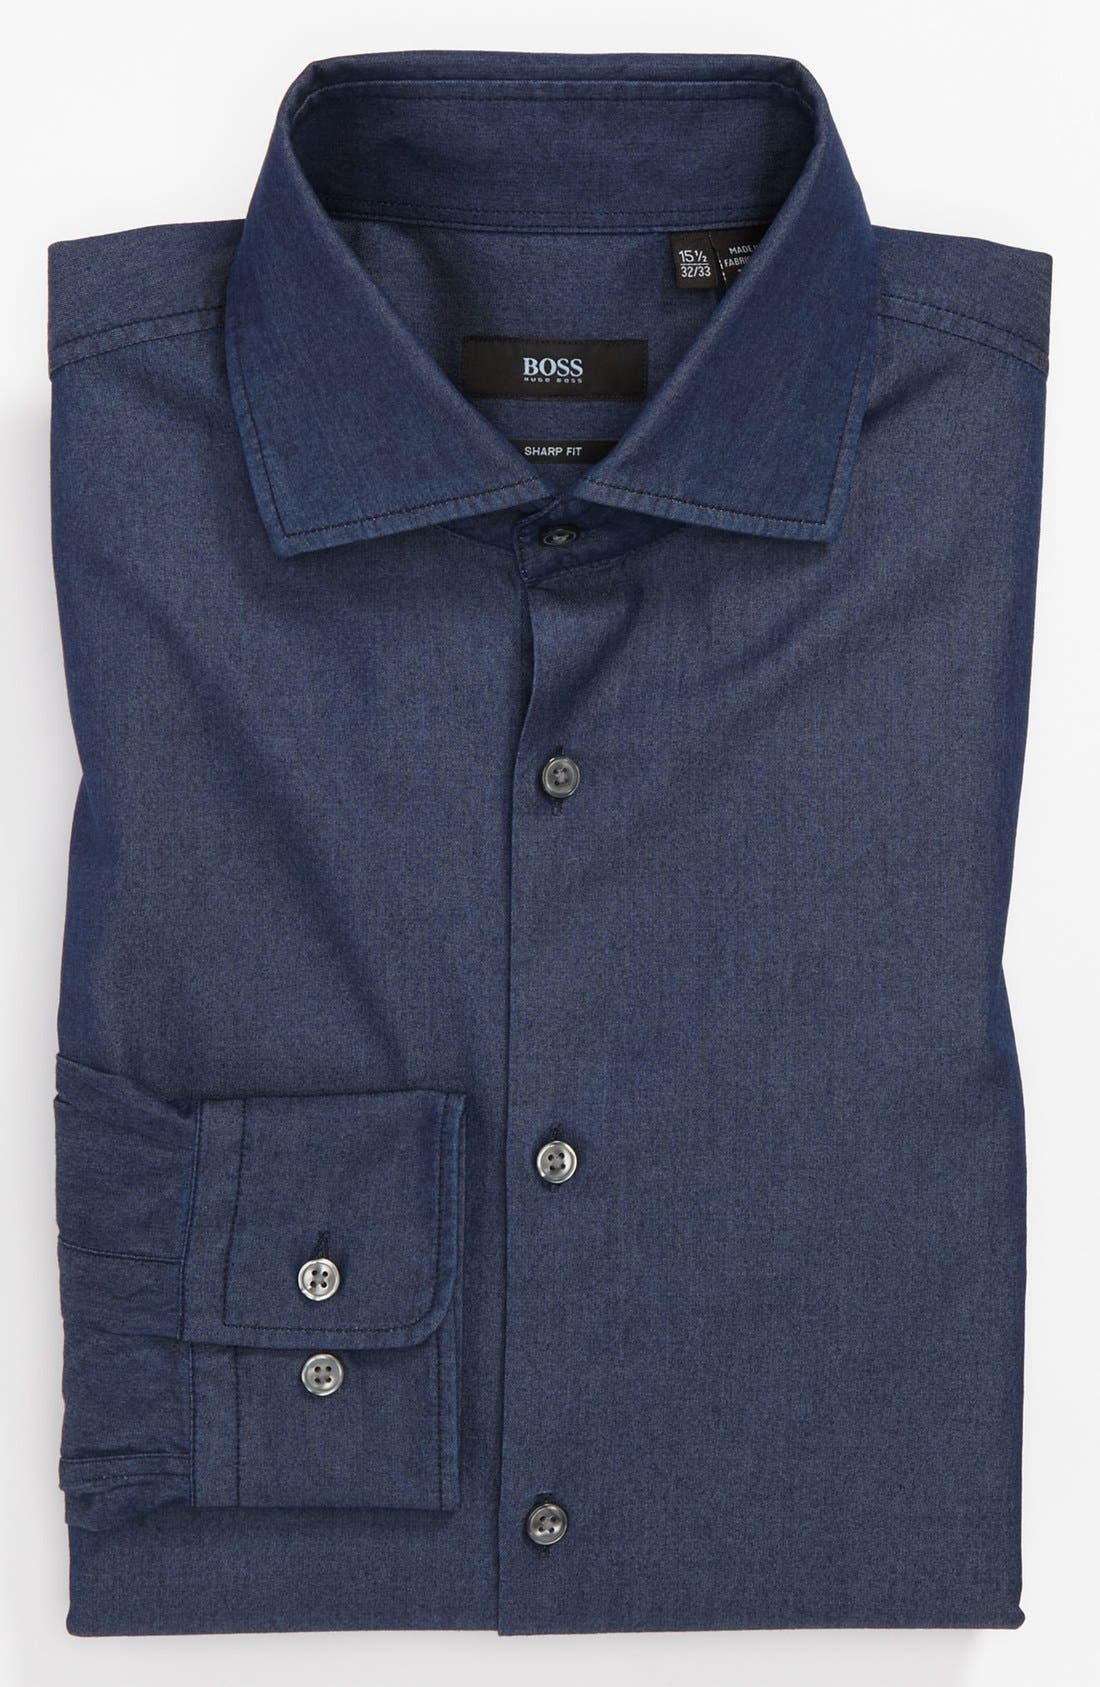 Alternate Image 1 Selected - BOSS HUGO BOSS Sharp Fit Dress Shirt